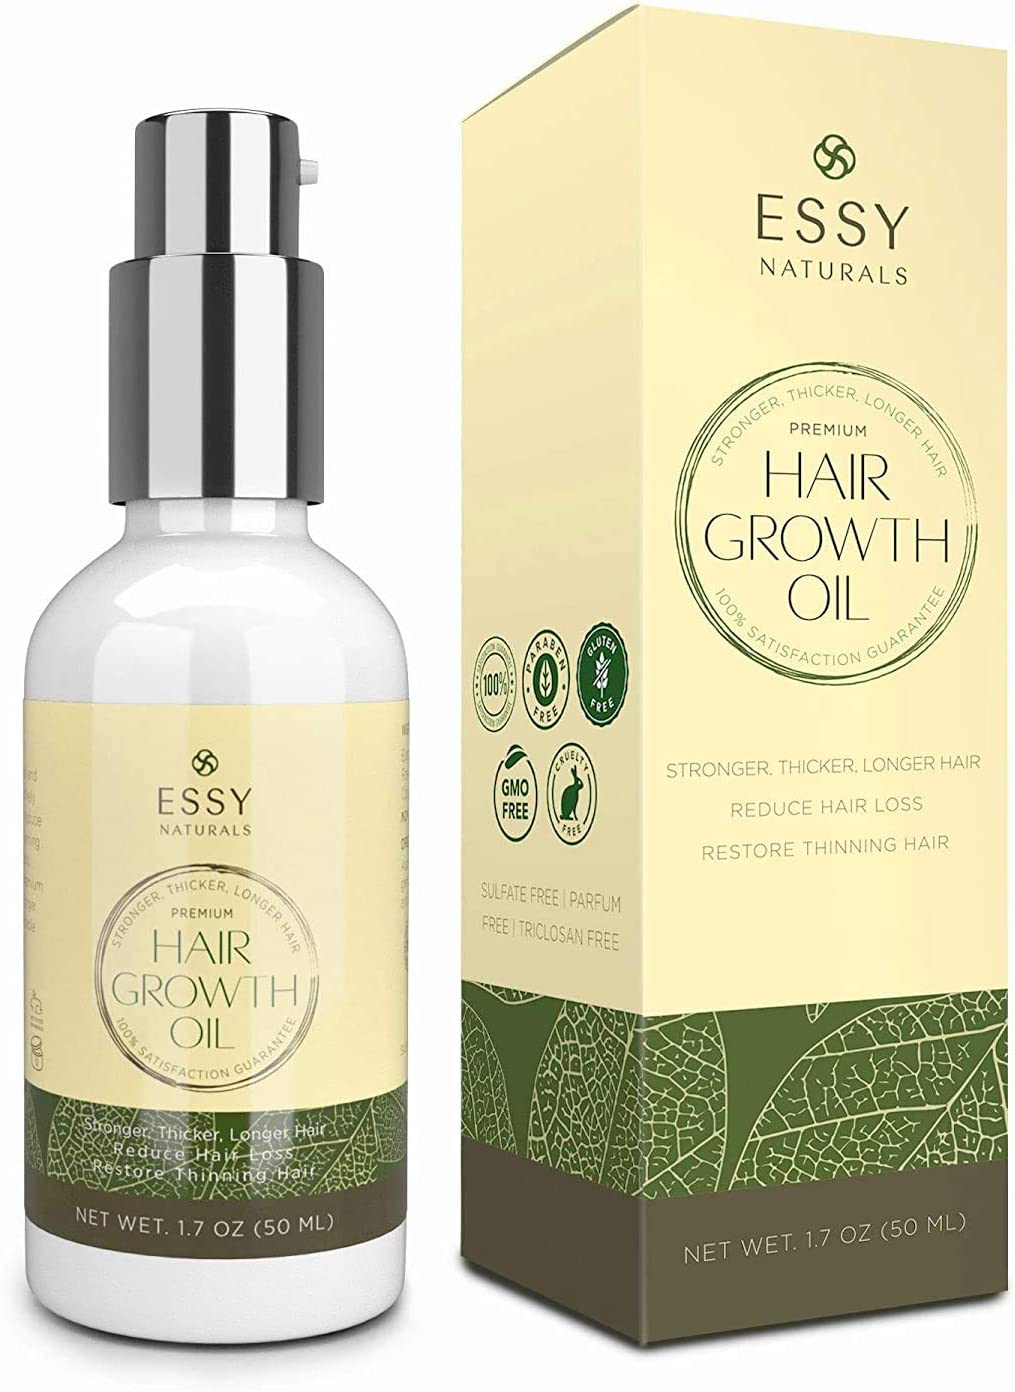 Natural Growth Hair Oil with Caffeine - Hair Growth Oil for Stronger,  Thicker, Longer Hair 35.35 oz